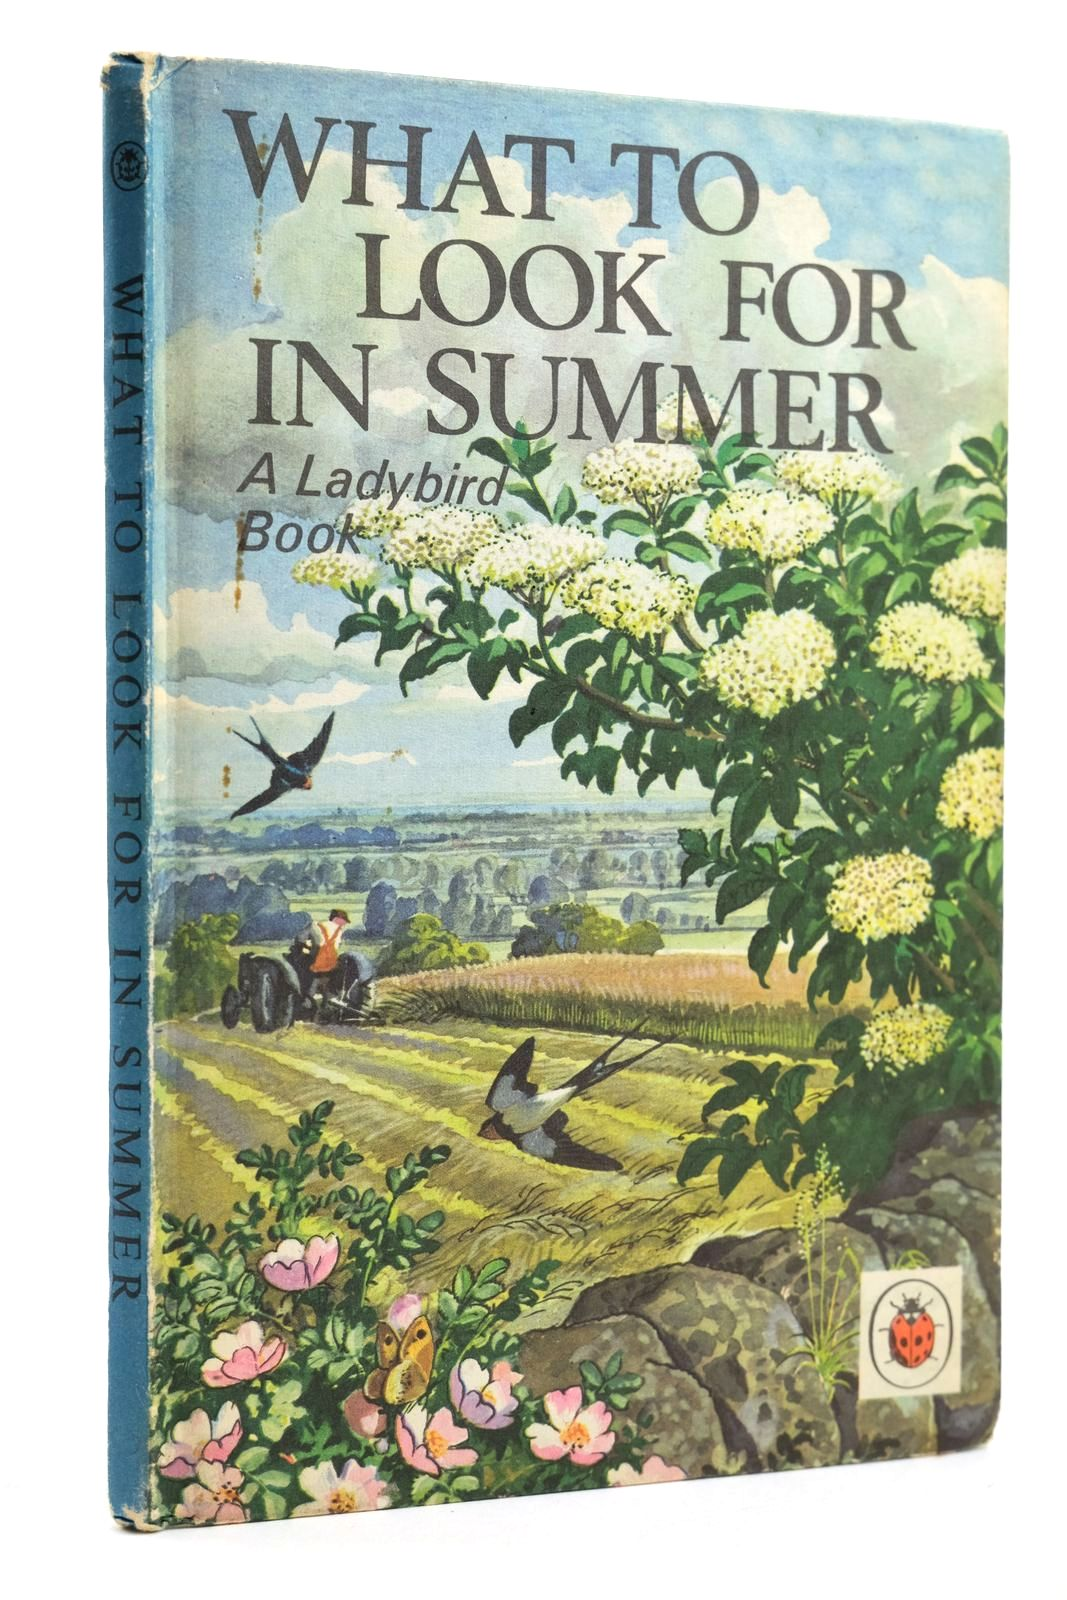 Photo of WHAT TO LOOK FOR IN SUMMER written by Watson, E.L. Grant illustrated by Tunnicliffe, C.F. published by Wills & Hepworth Ltd. (STOCK CODE: 2131784)  for sale by Stella & Rose's Books